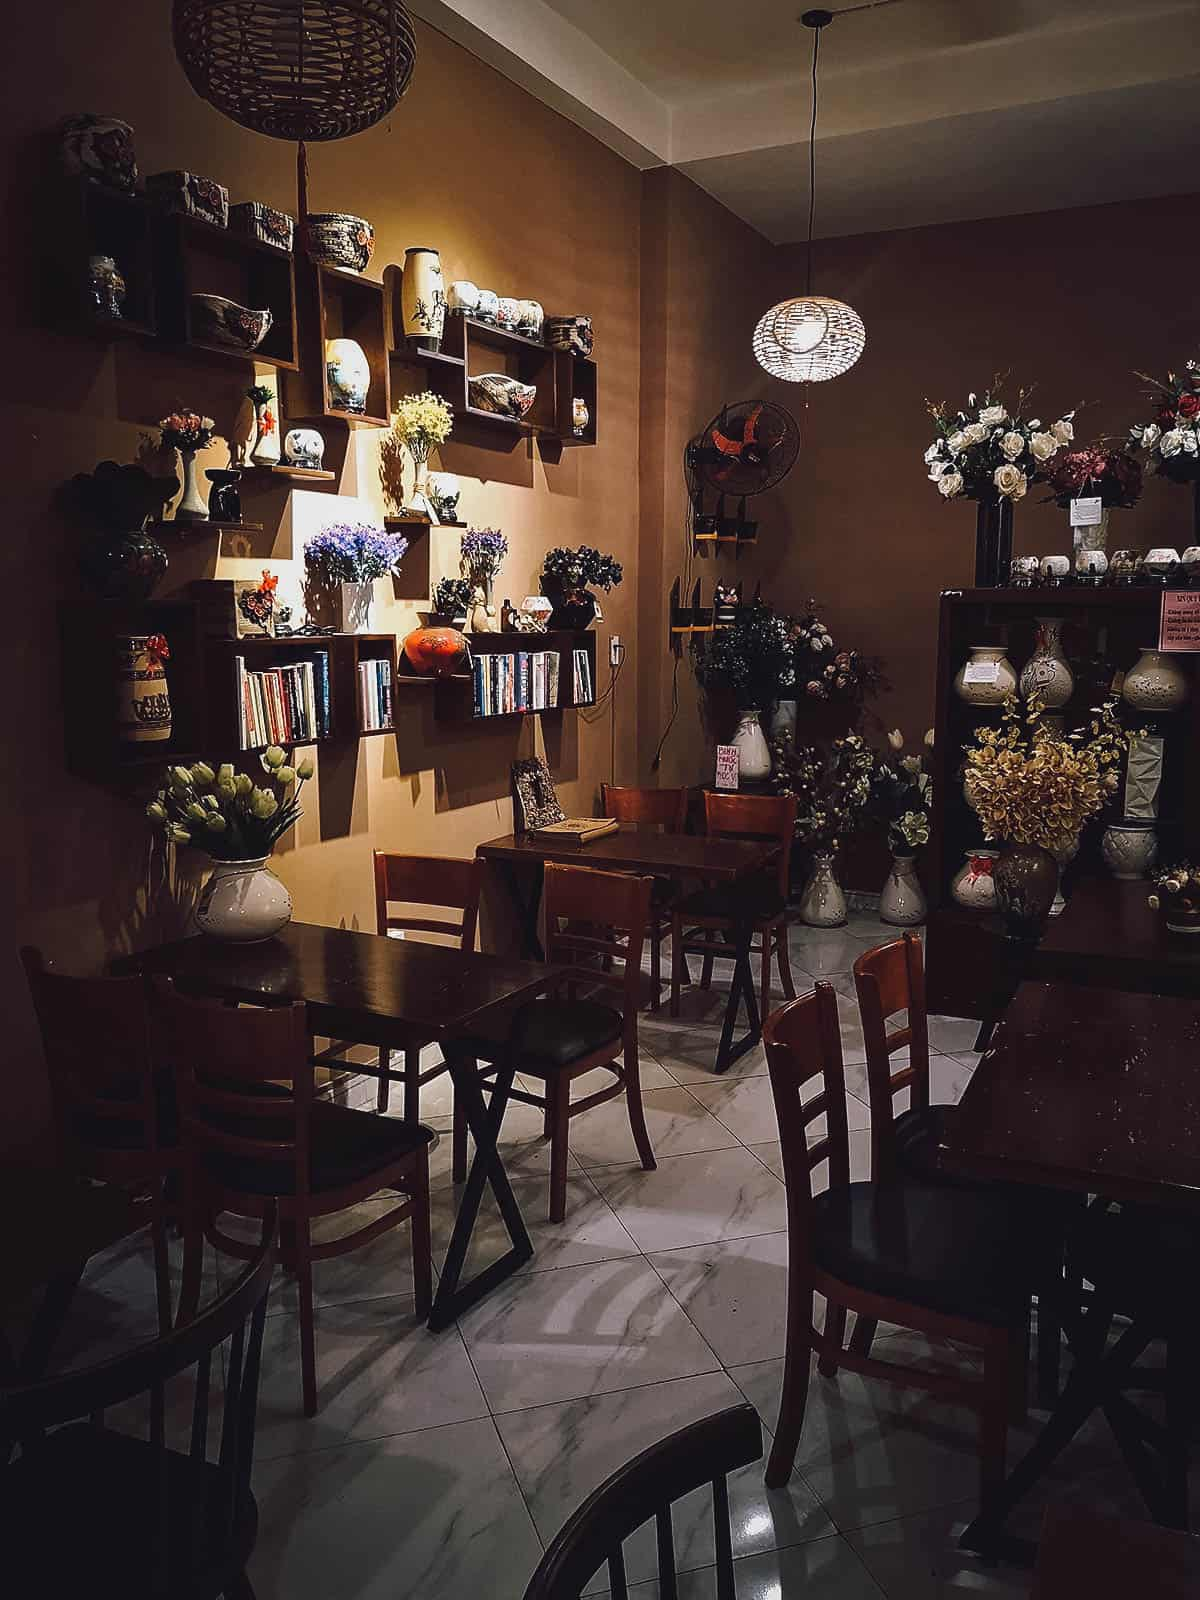 1987's House Coffee & Flower interior